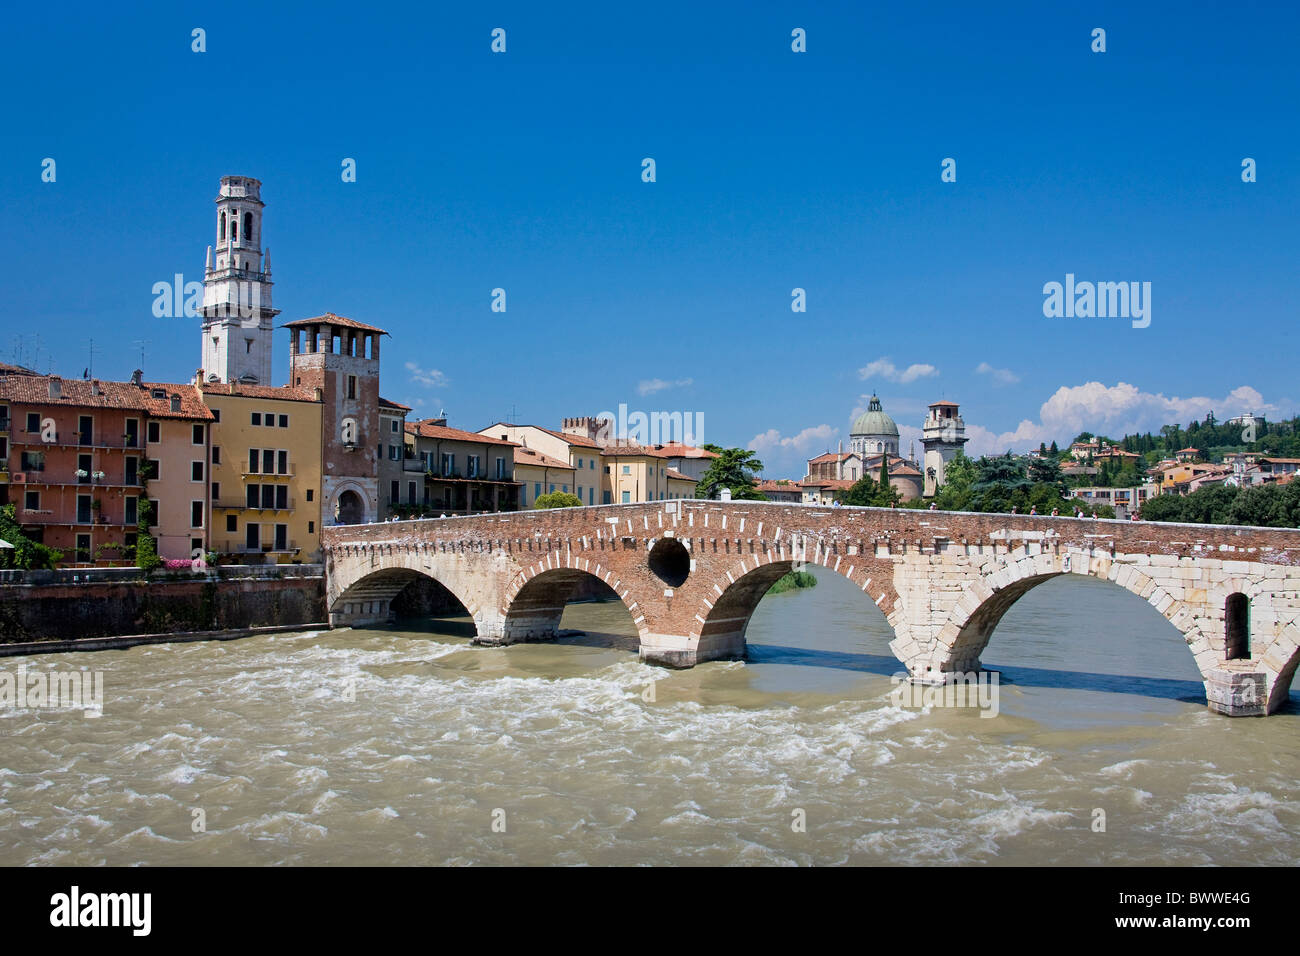 Italy Europe Verona travel Adige river bridge Ponte di Pietra Roman bridge old town city - Stock Image